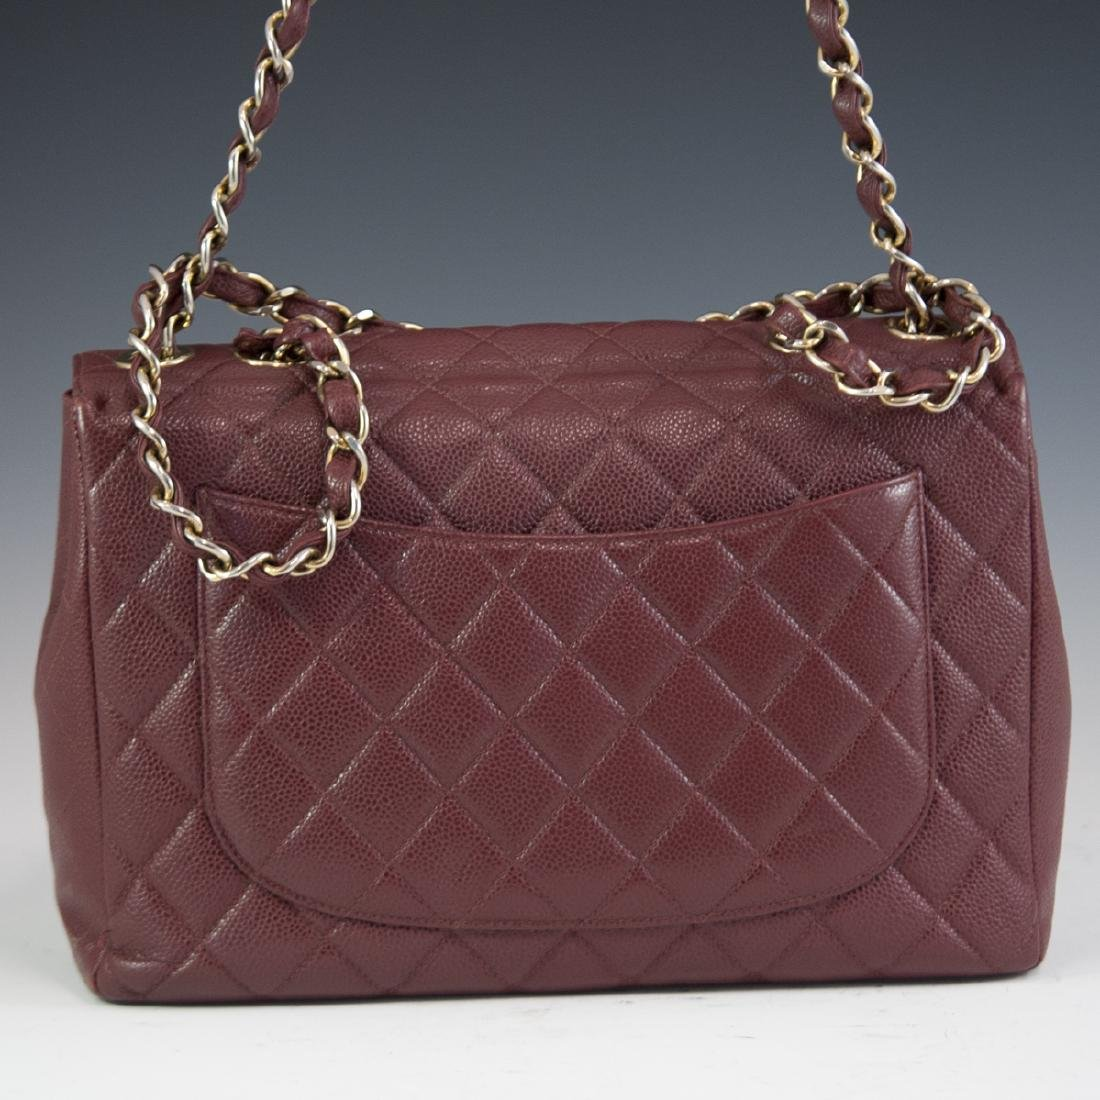 Chanel Caviar Leather Flap Bag - 7